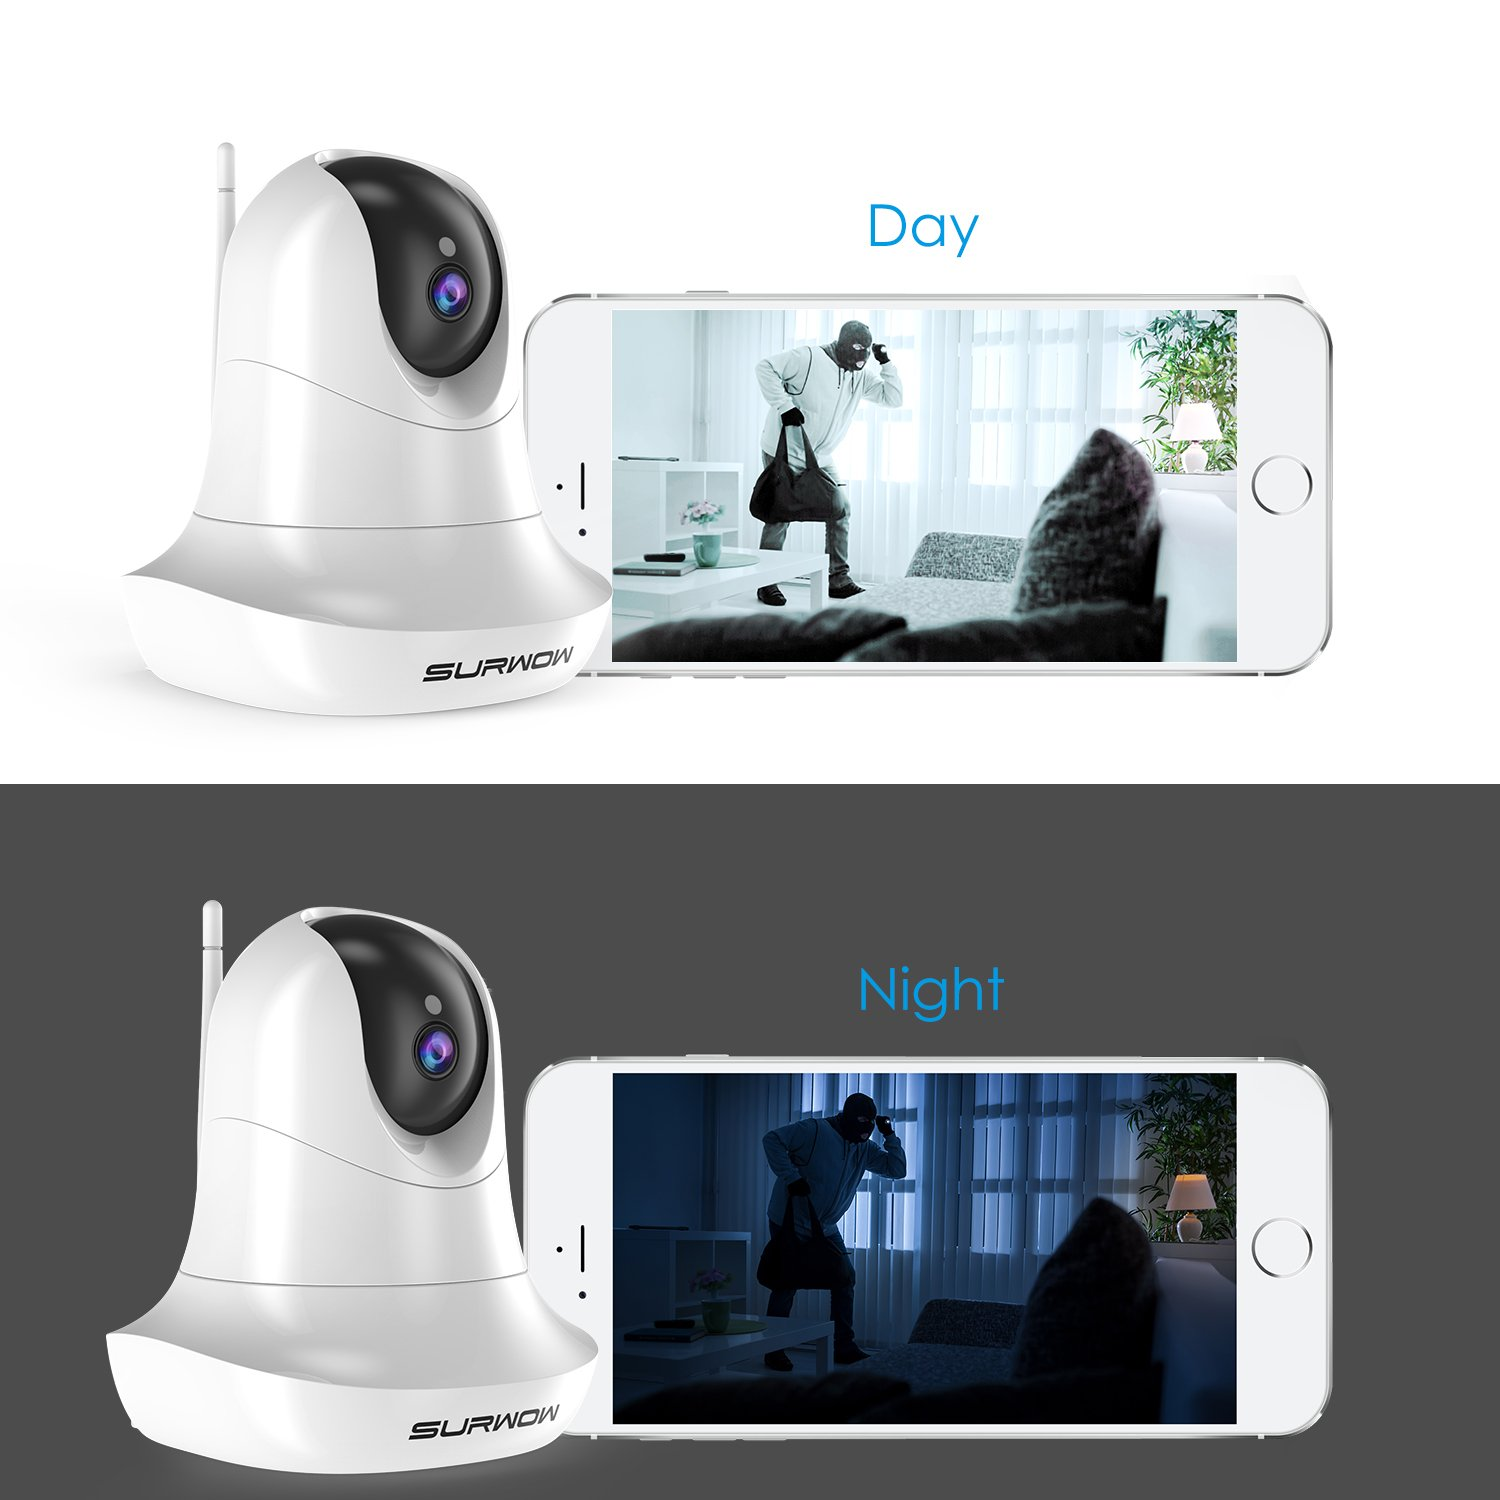 SURWOW Wireless IP Camera -1080P Wifi Surveillance Cameras Wireless HD with 2 Megapixel,Night Vision, Zoom/Pan/Tilt Control, Two-Way Audio for Baby,Pet Monitor and Home Security (WHITE) by SURWOW (Image #6)